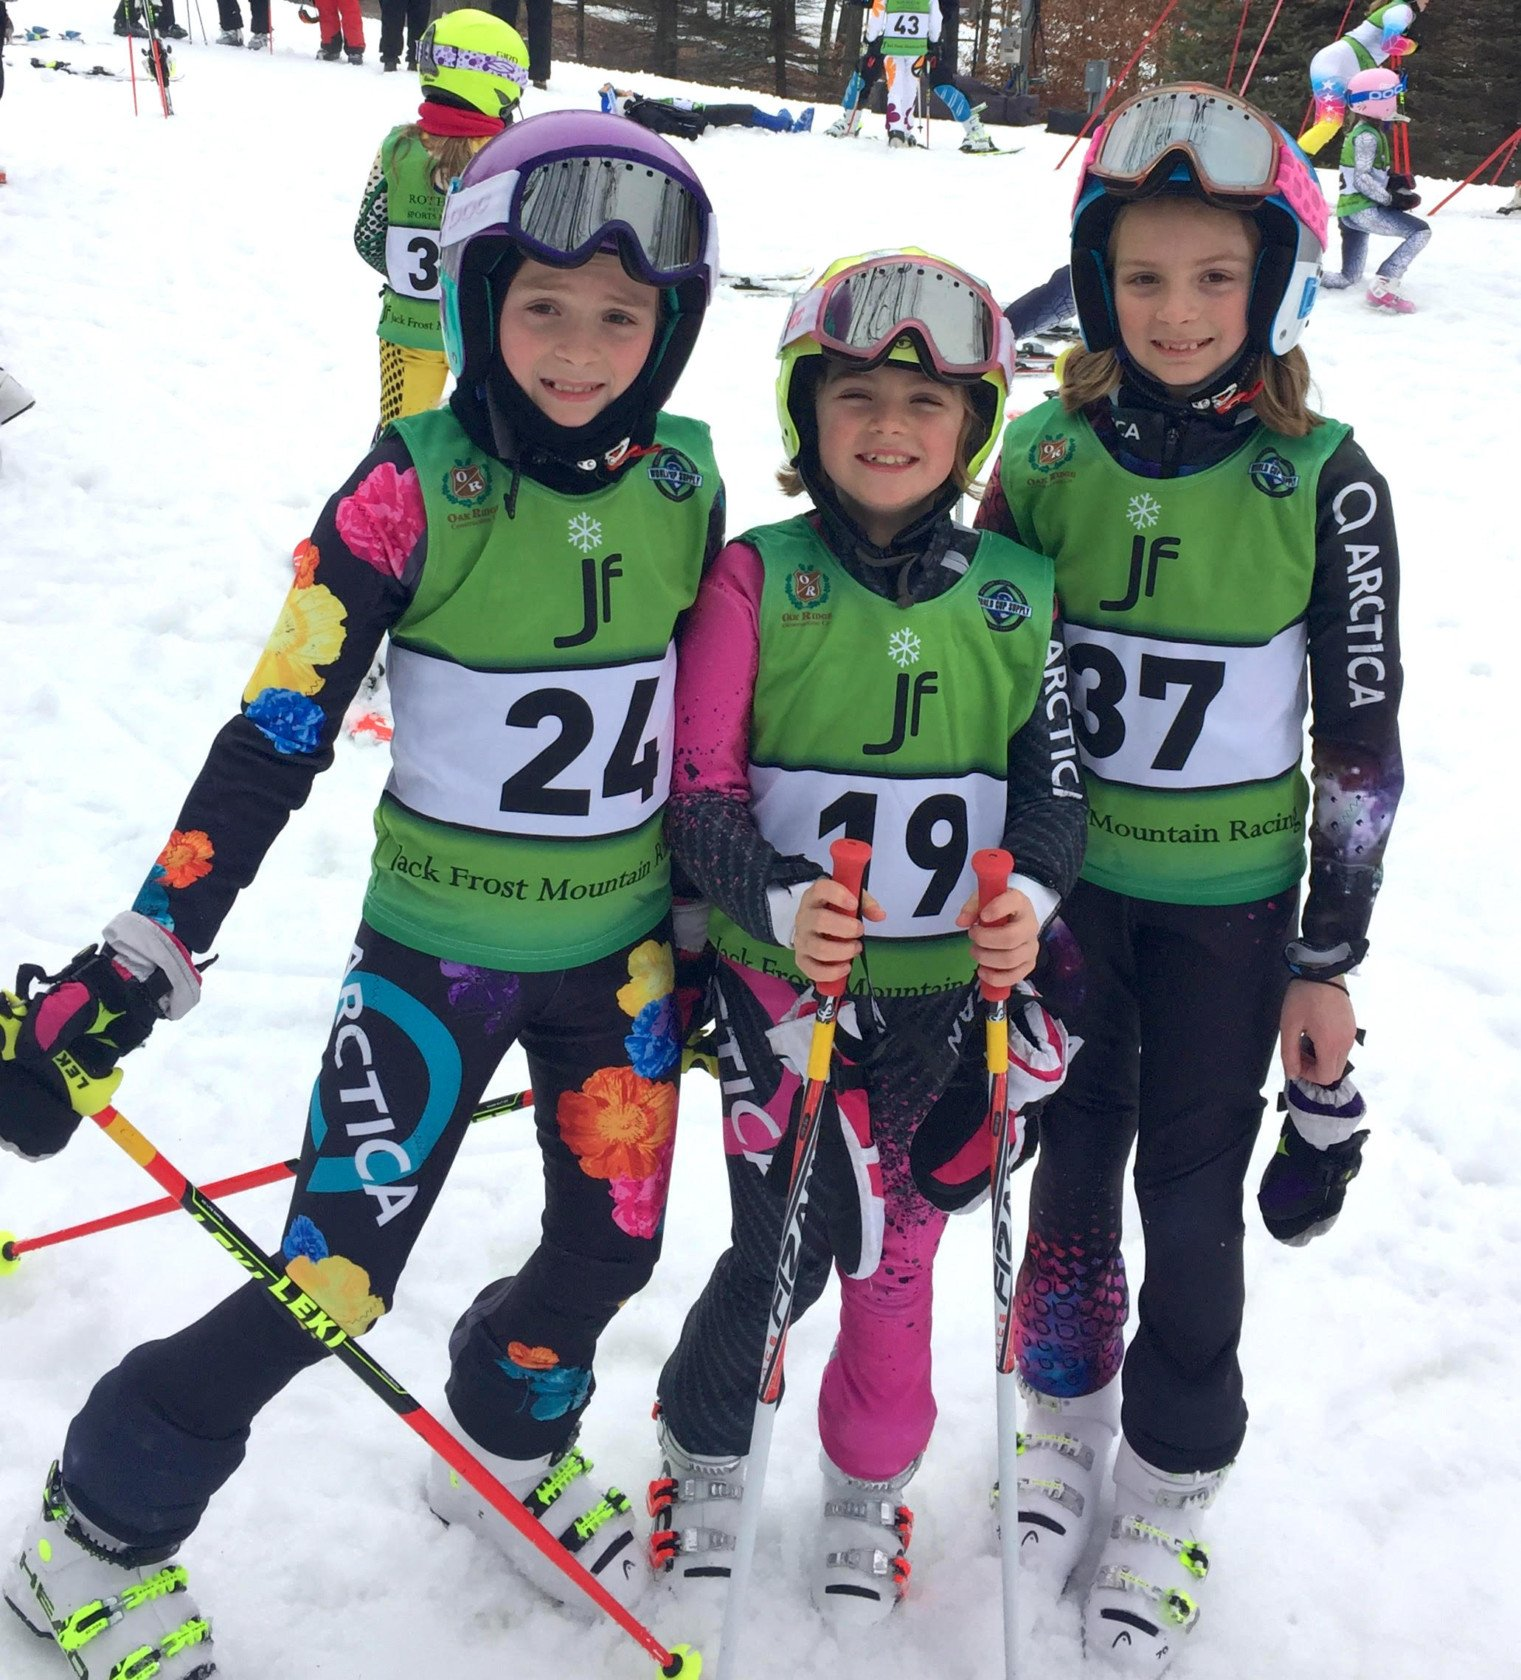 No matter what they age, they love the Arctica ski racing suits for girls.